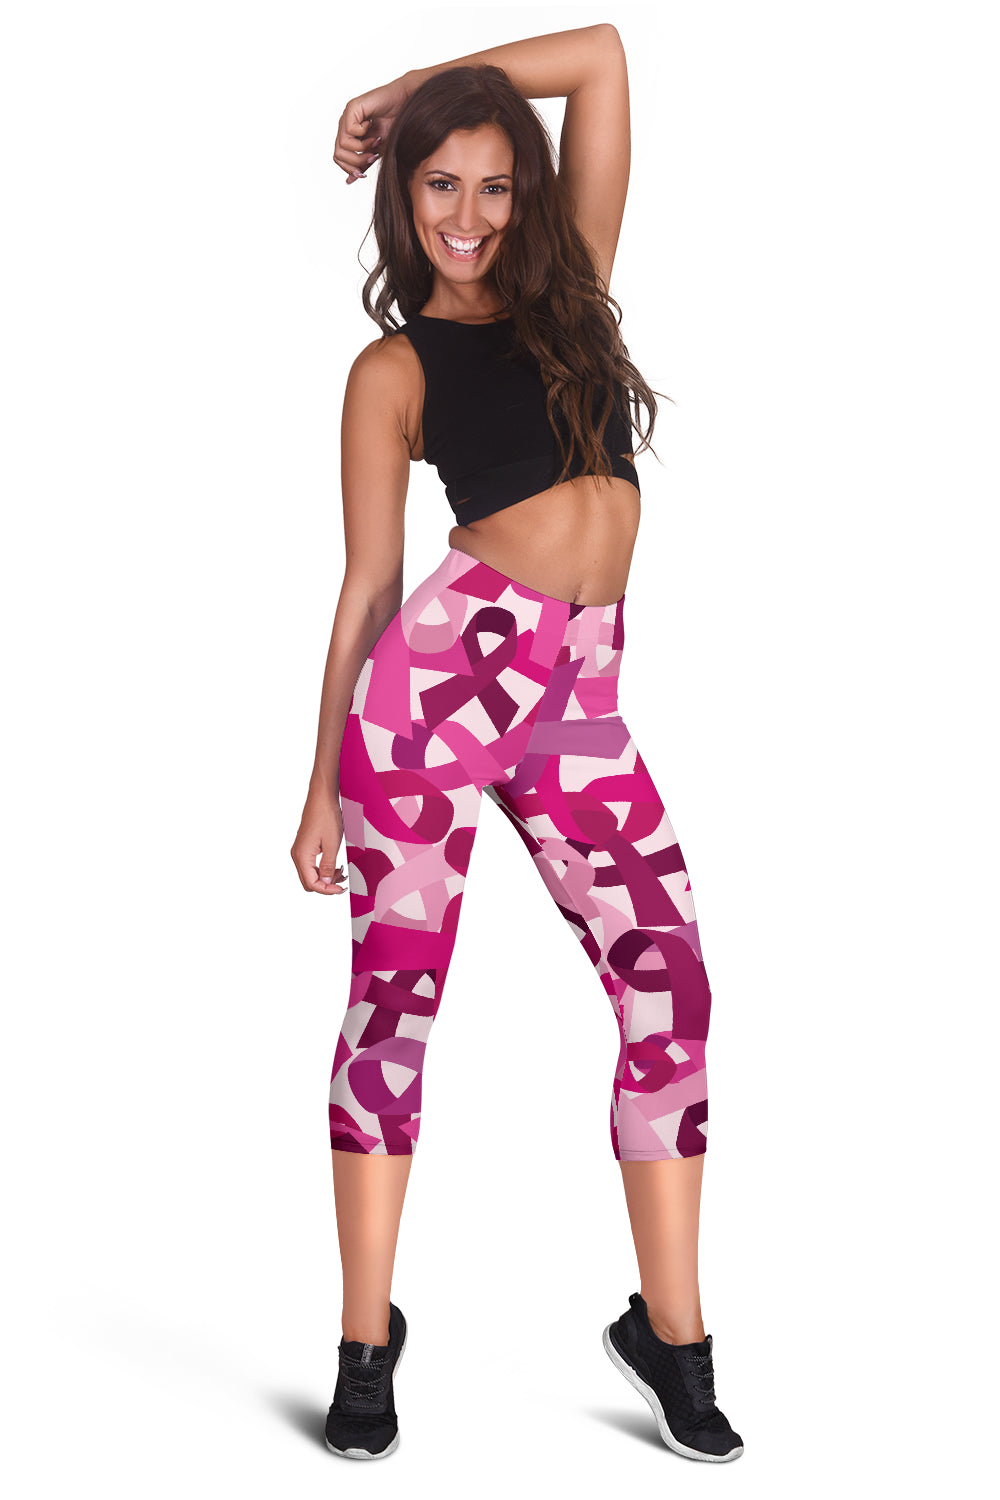 Breast Cancer Awareness Women's Capris Leggings